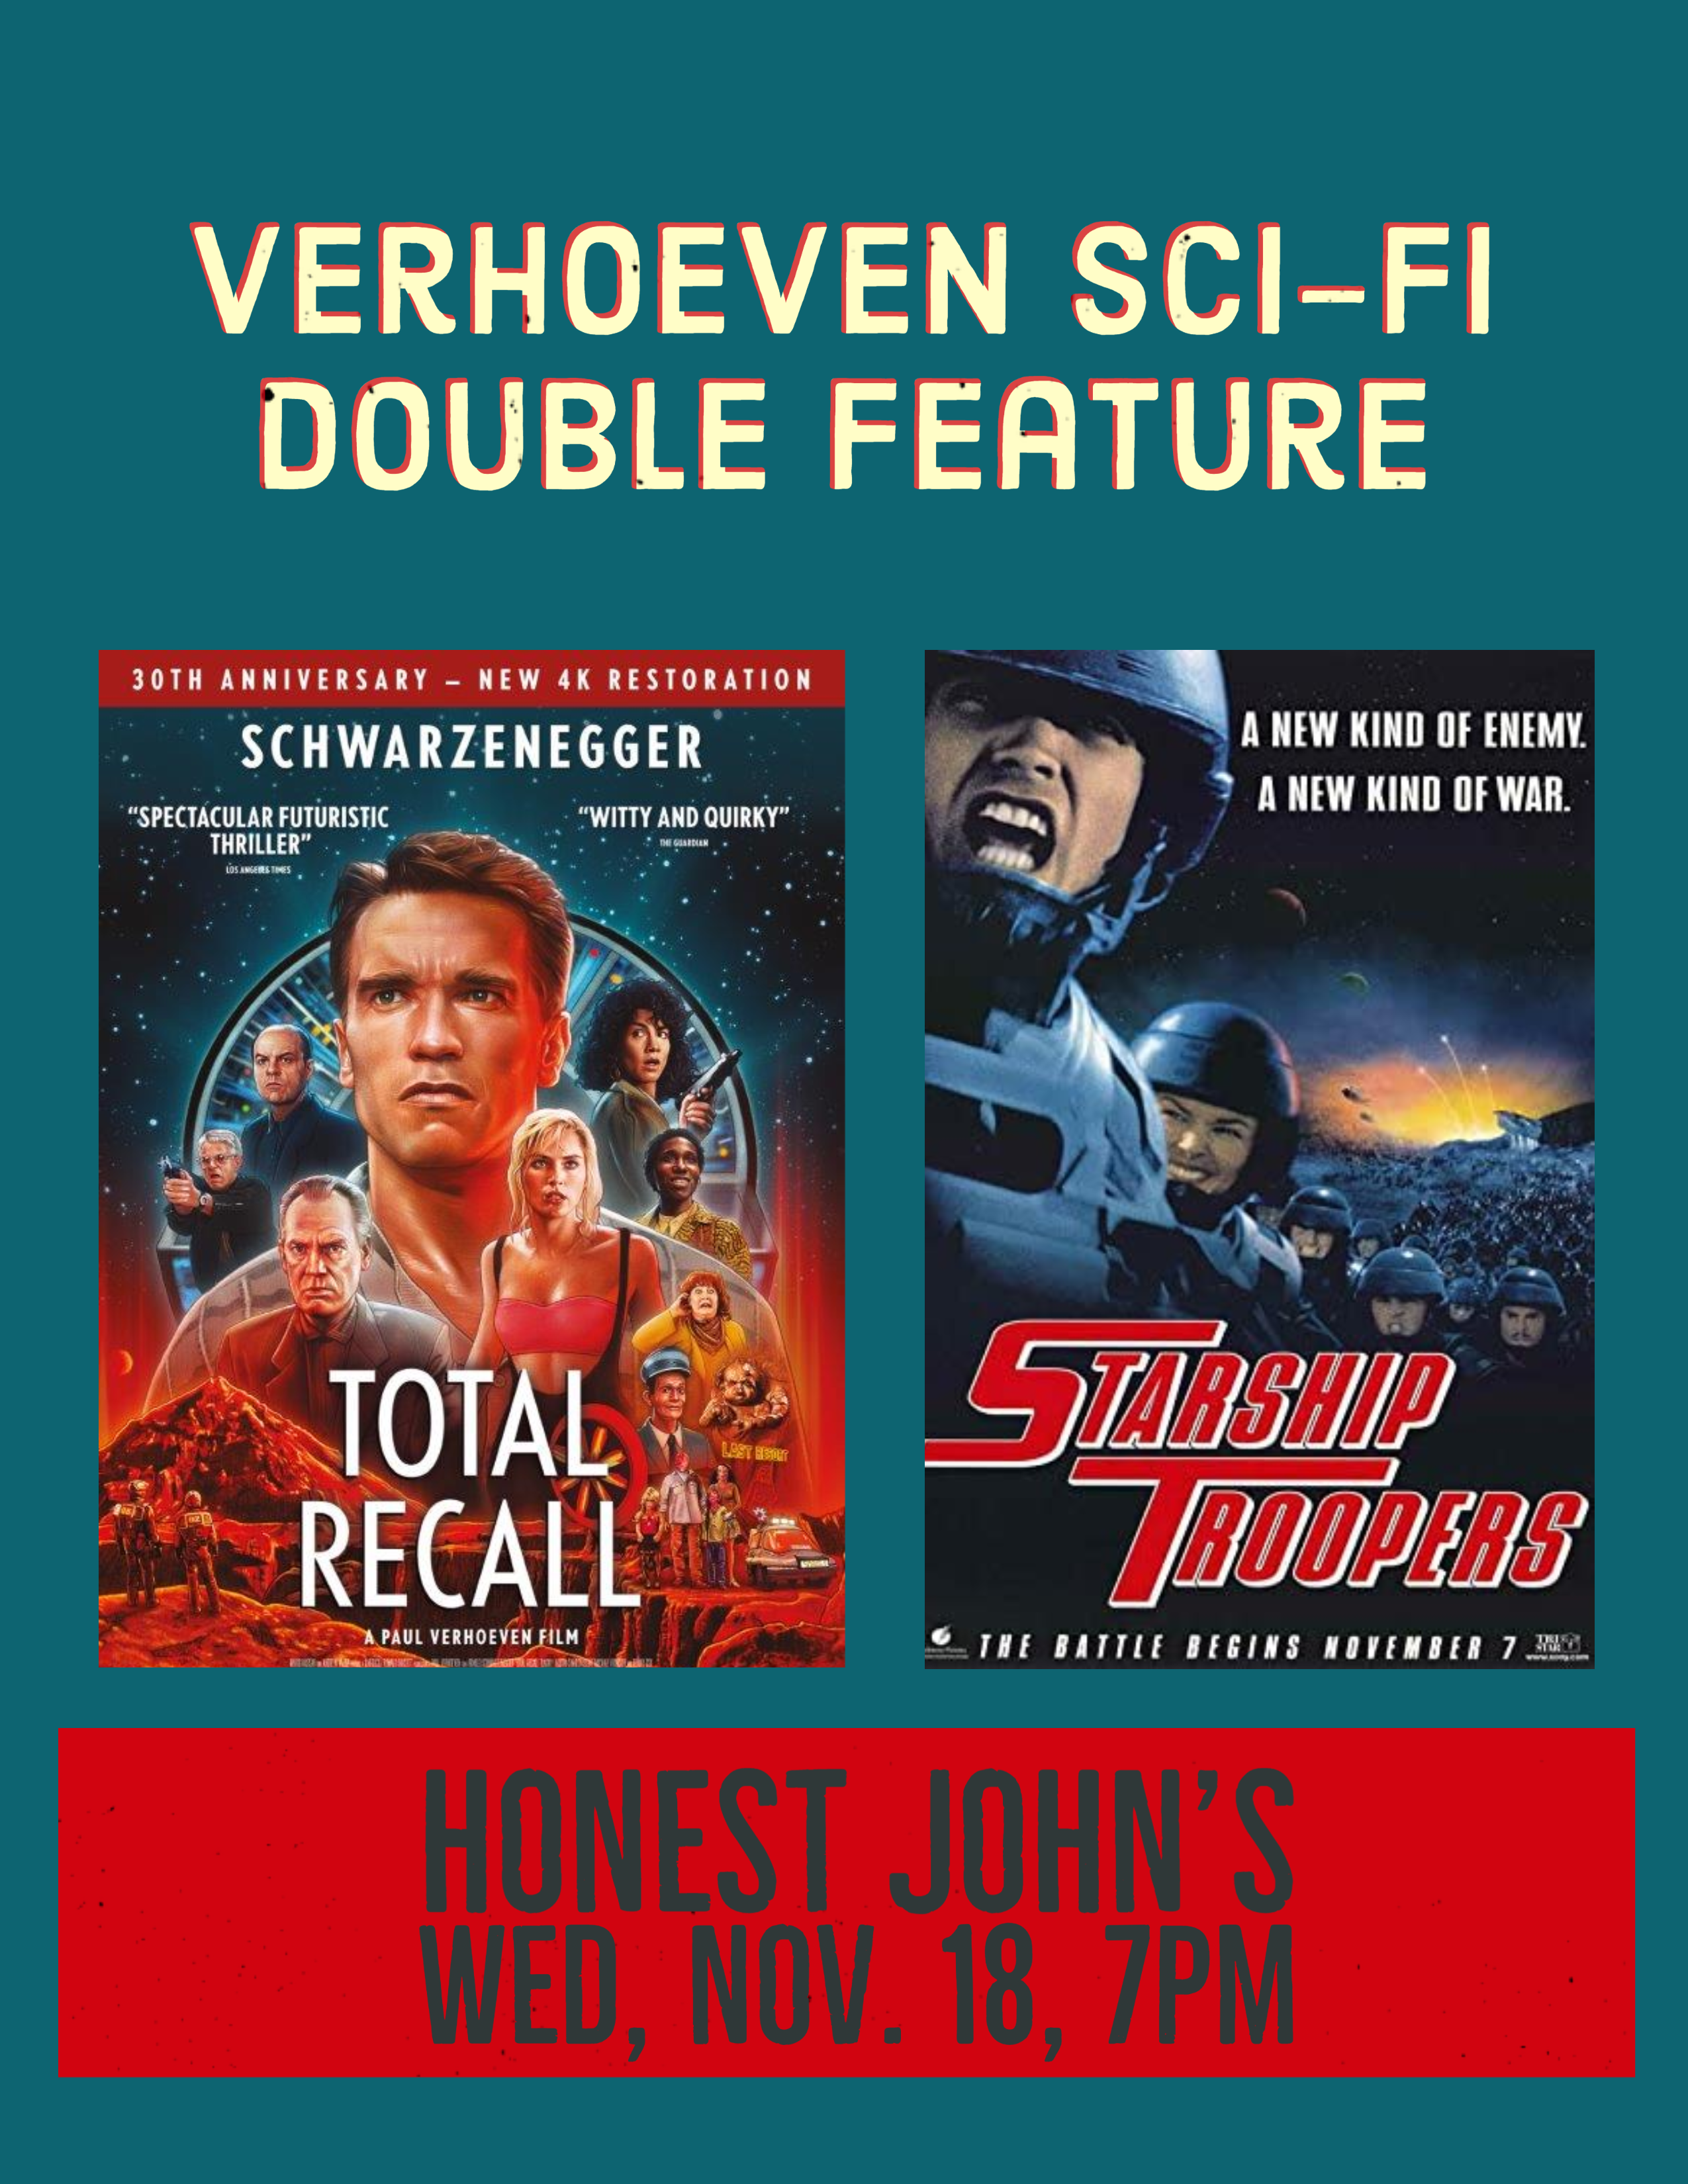 Poster for Verhoeven Double Feature